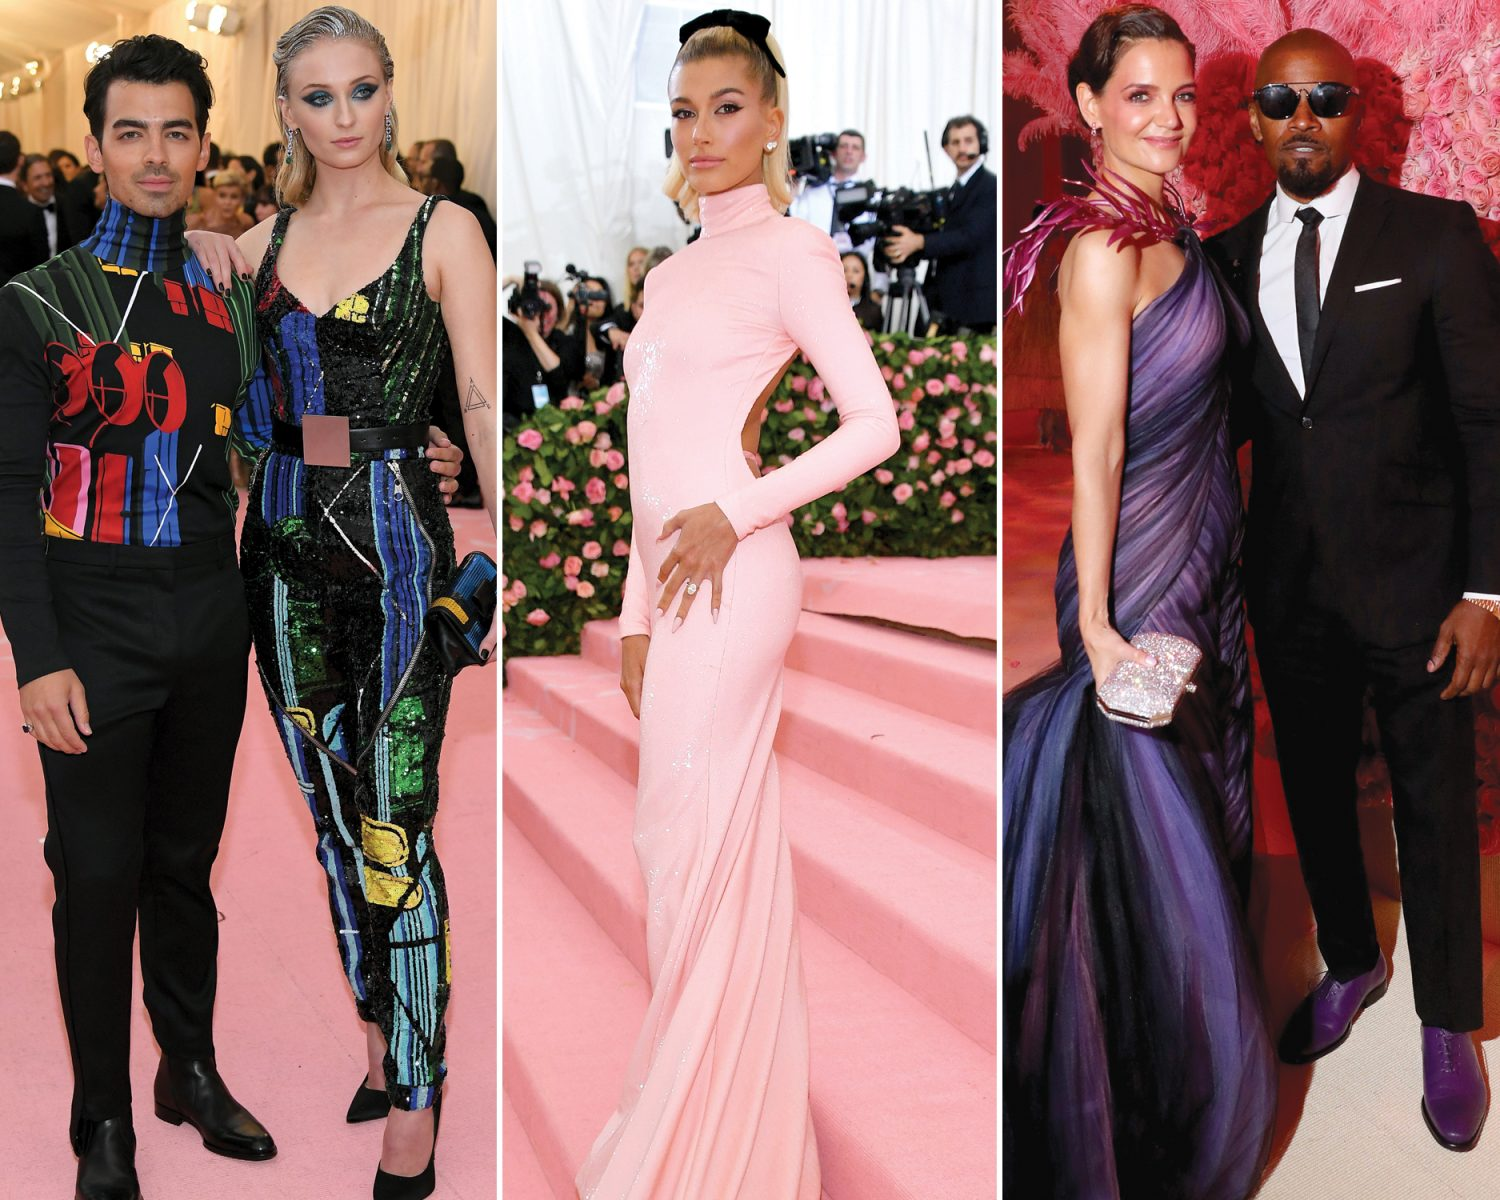 The Most Noteworthy Couple Moments of the 2019 Met Gala